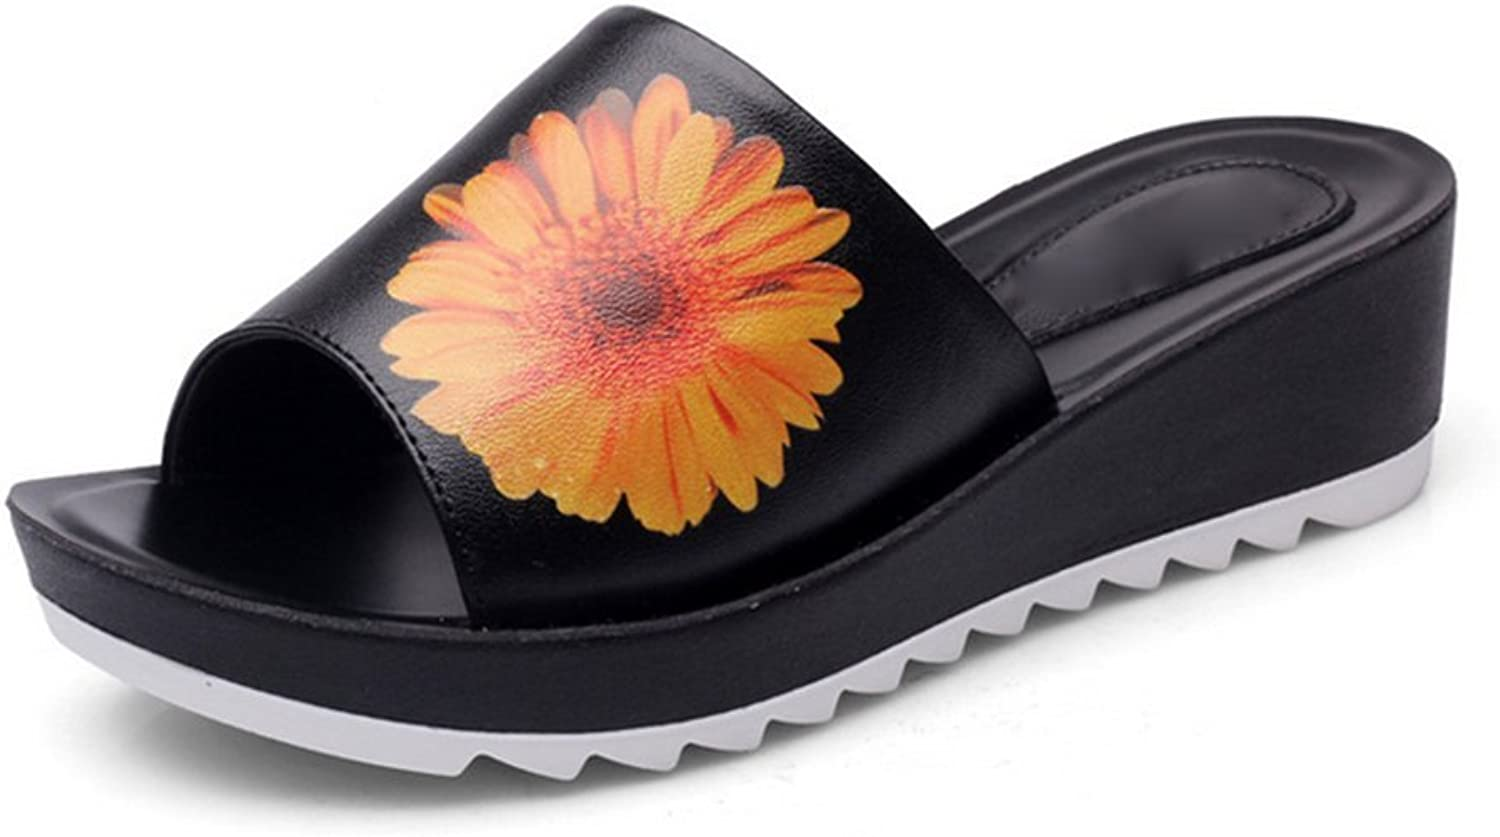 Weiwei Ladies Thick-Soled Sandals and Slippers,Summer Flip Flops High Heels Slippers